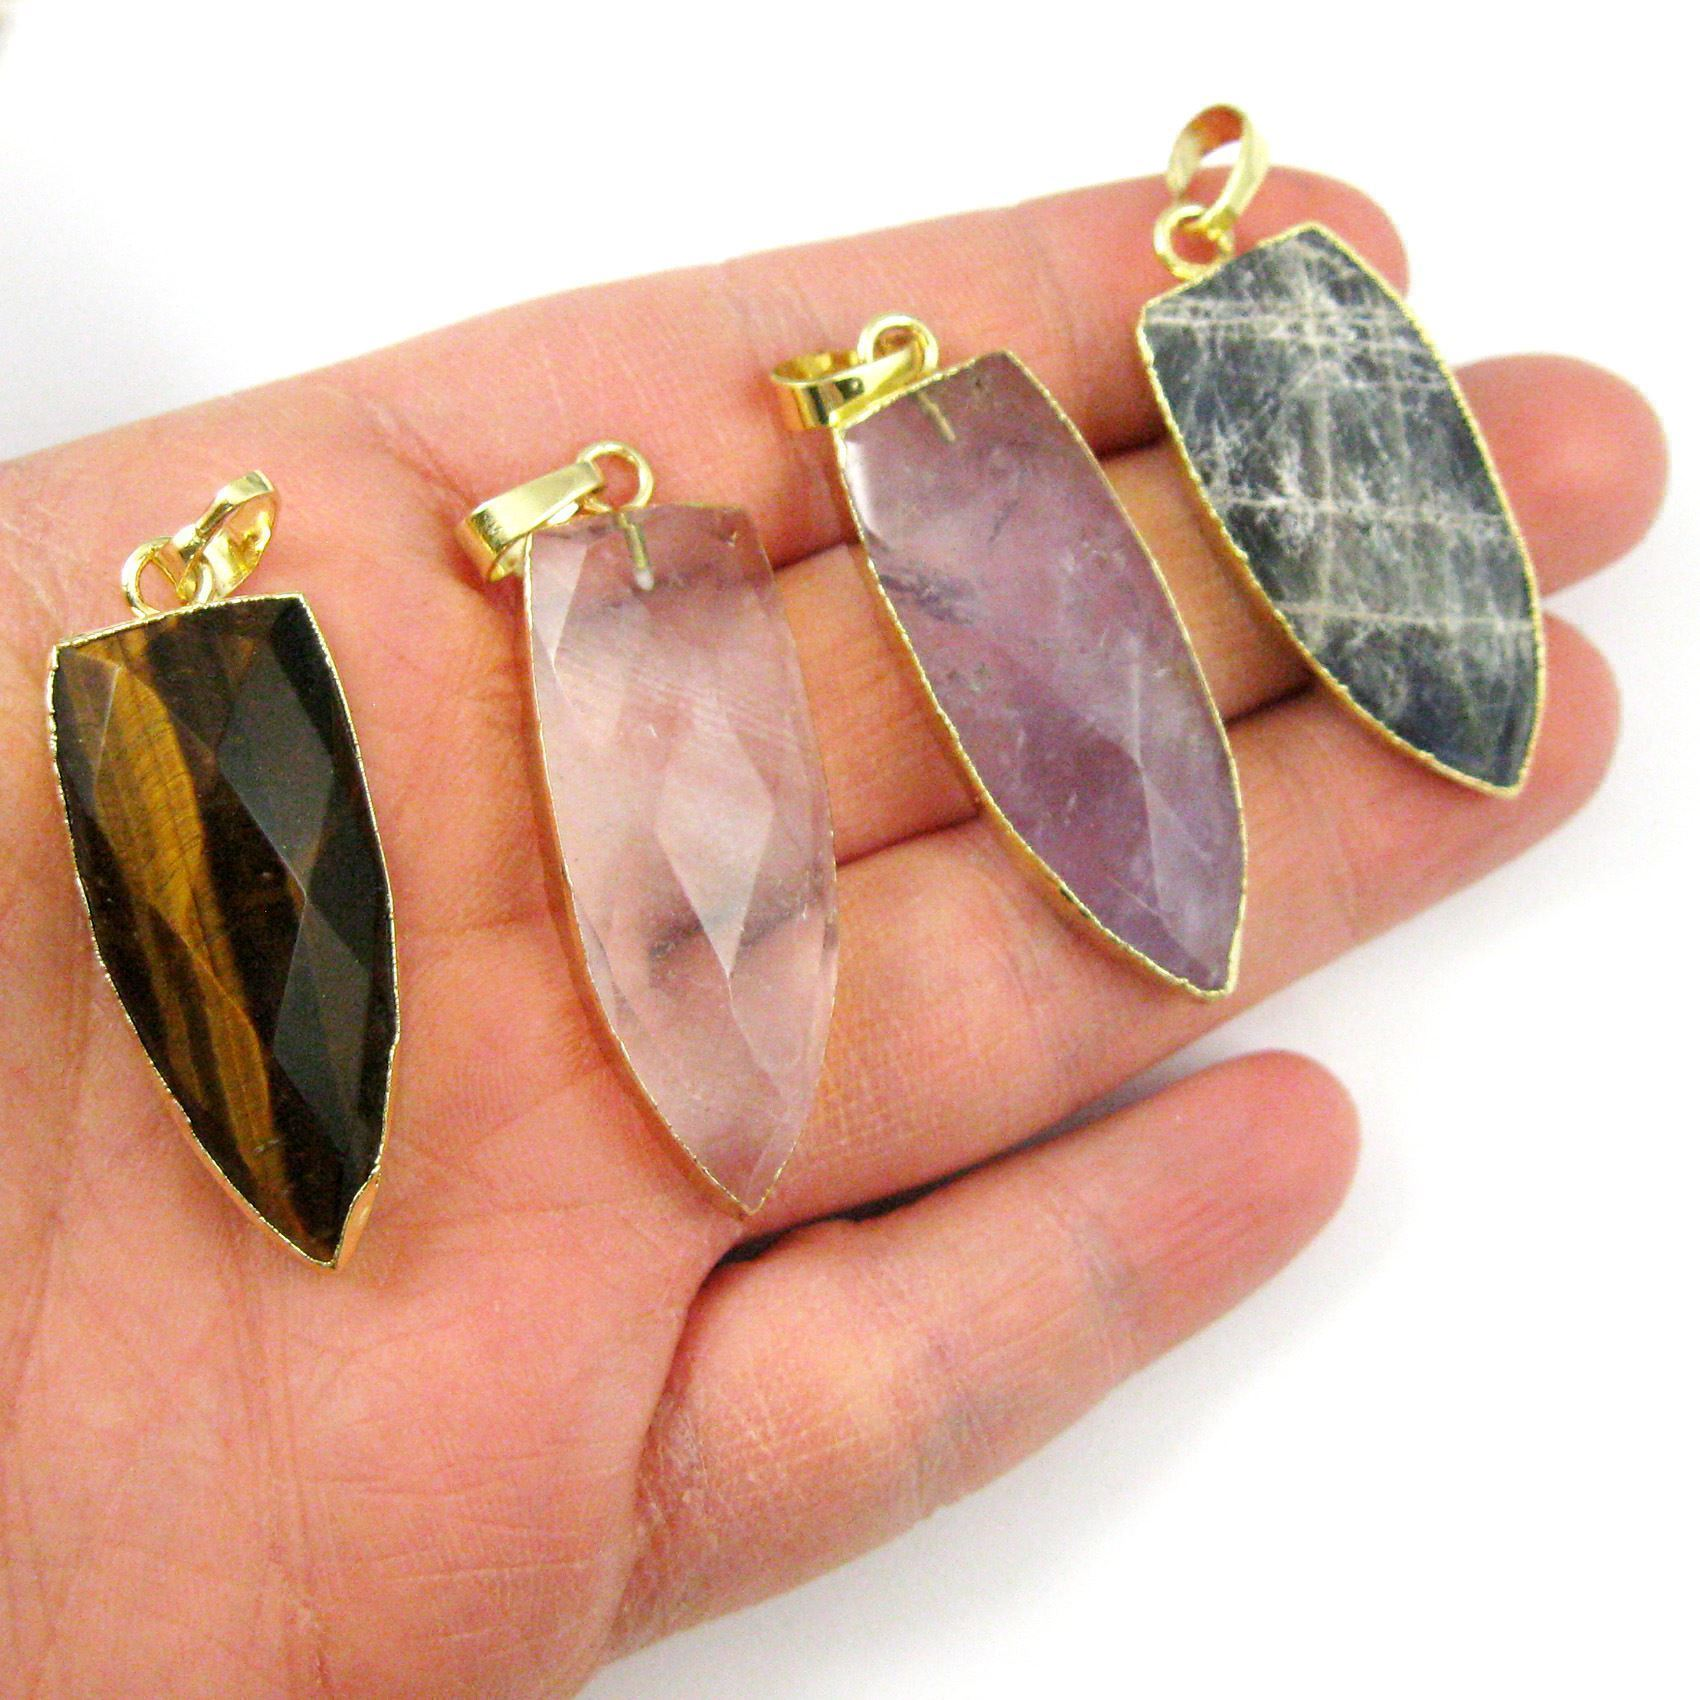 Gold Plated Faceted Arrowhead Pendant-Arrowhead charm-Natural Gemstone Spike Pendant - Pink Amethyst - 40mm